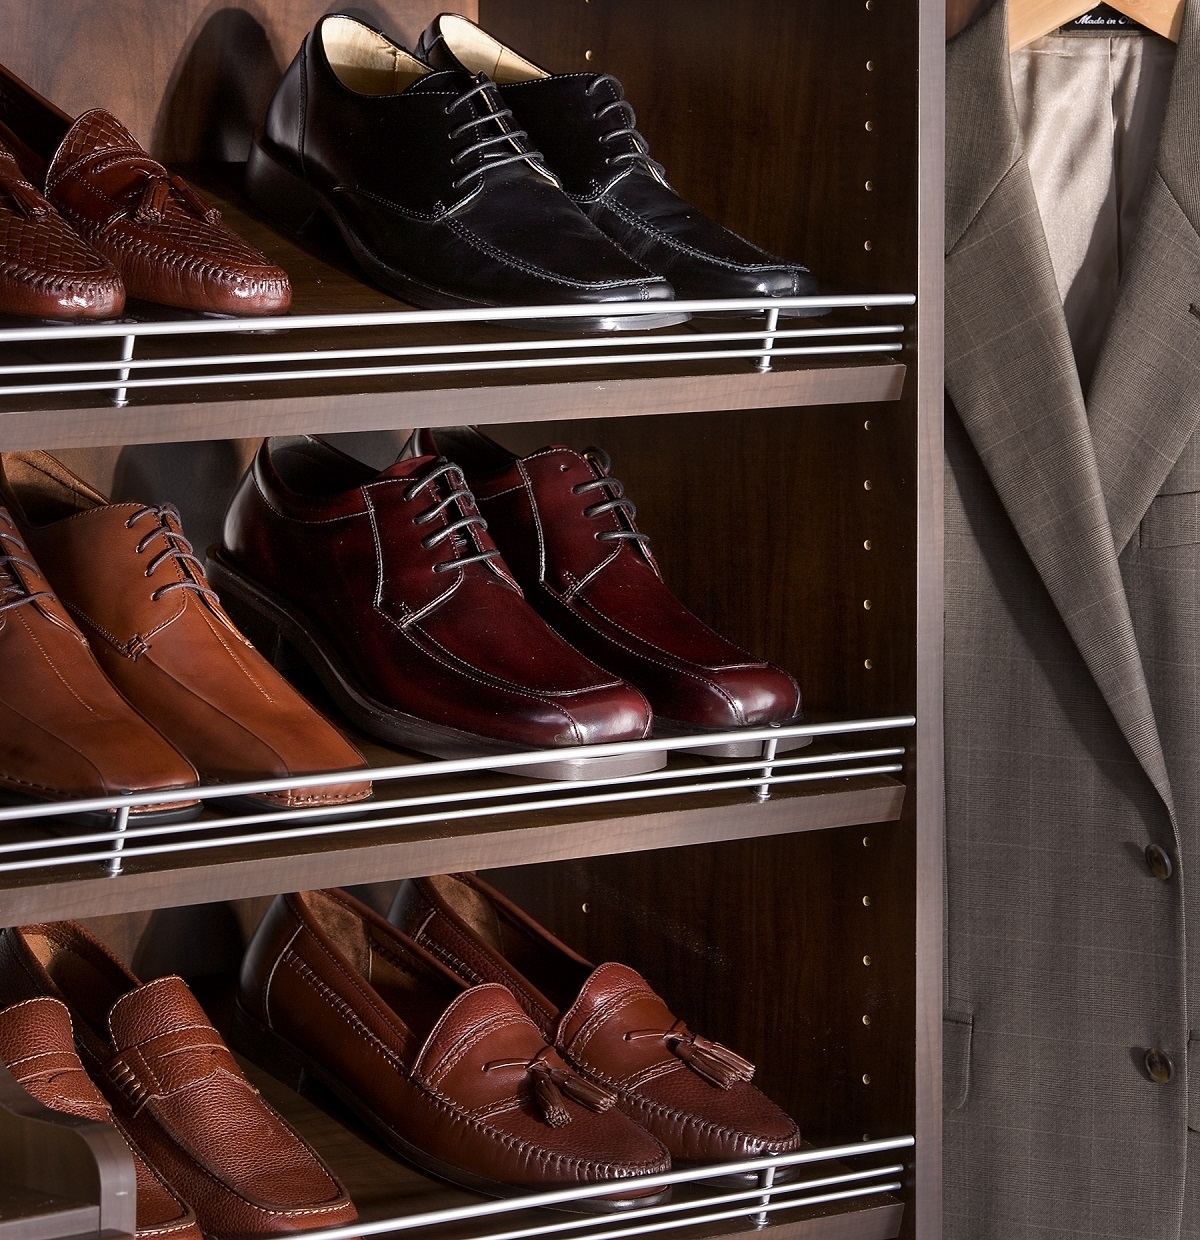 Men's dress shoes on angled shoe shelf in Boston, MA